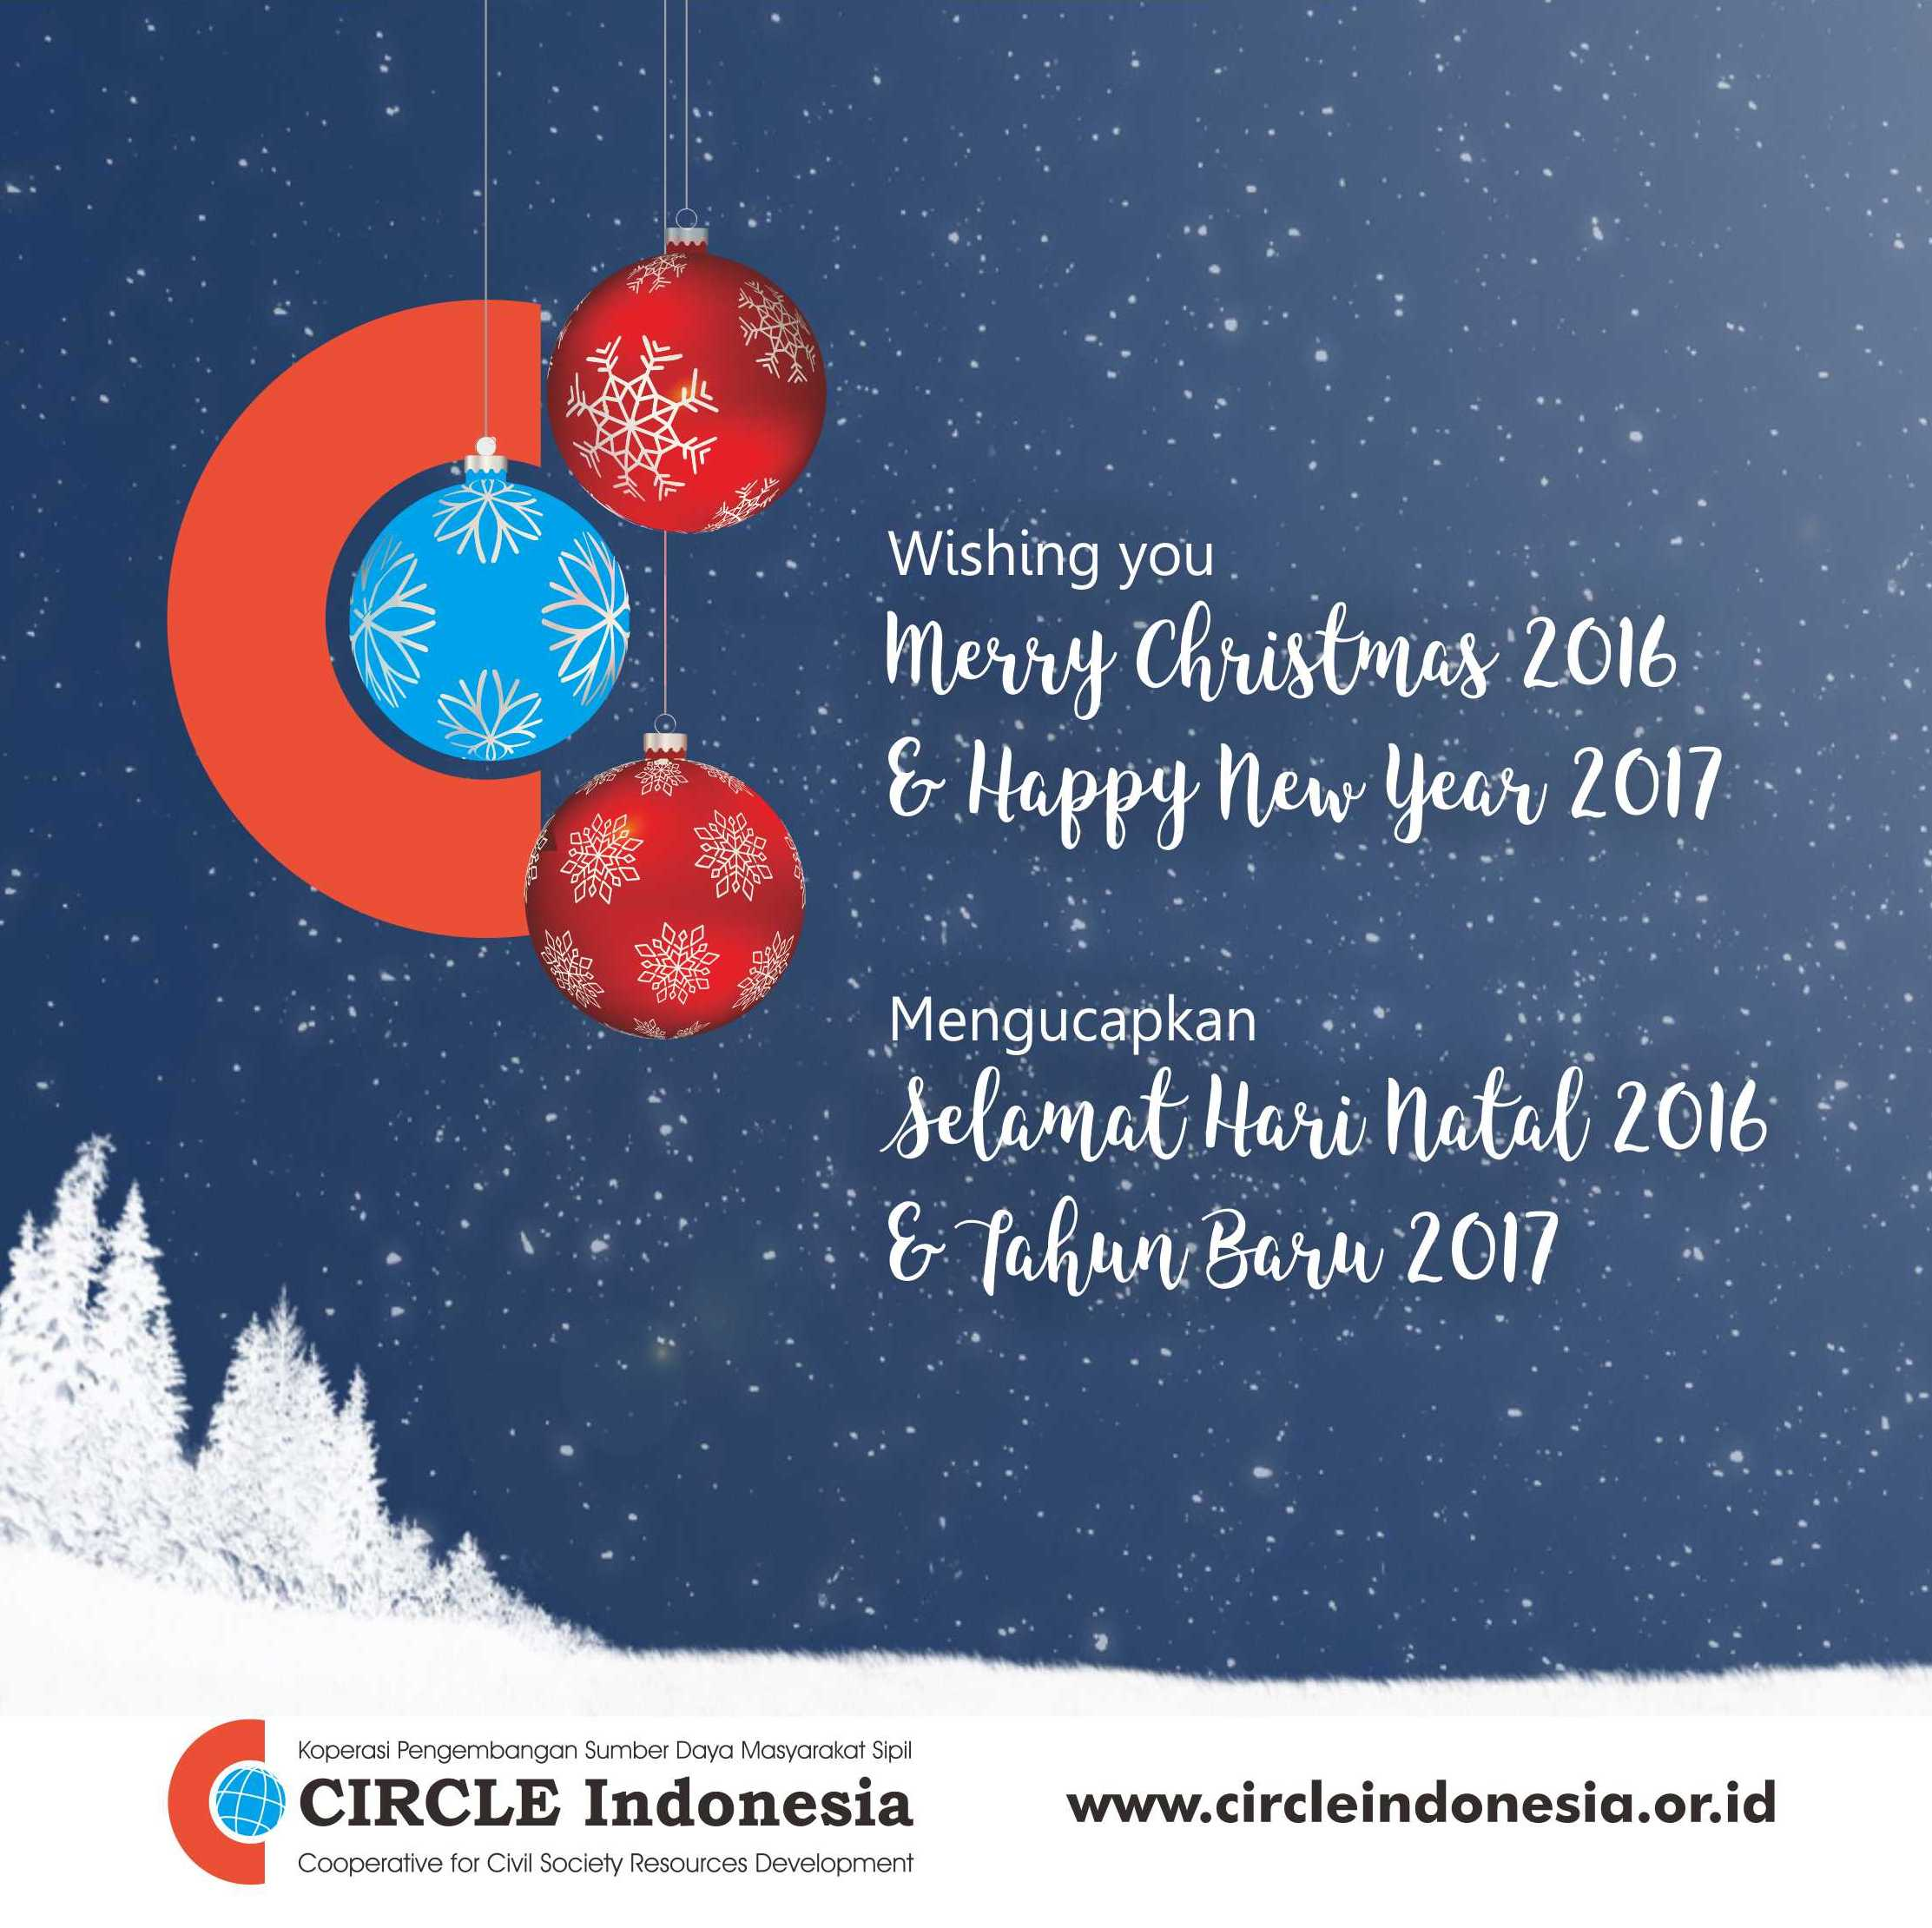 Circle Indonesia Family Wishing You Merry Christmas 2016 And Happy New Year 2017 Circle Indonesia